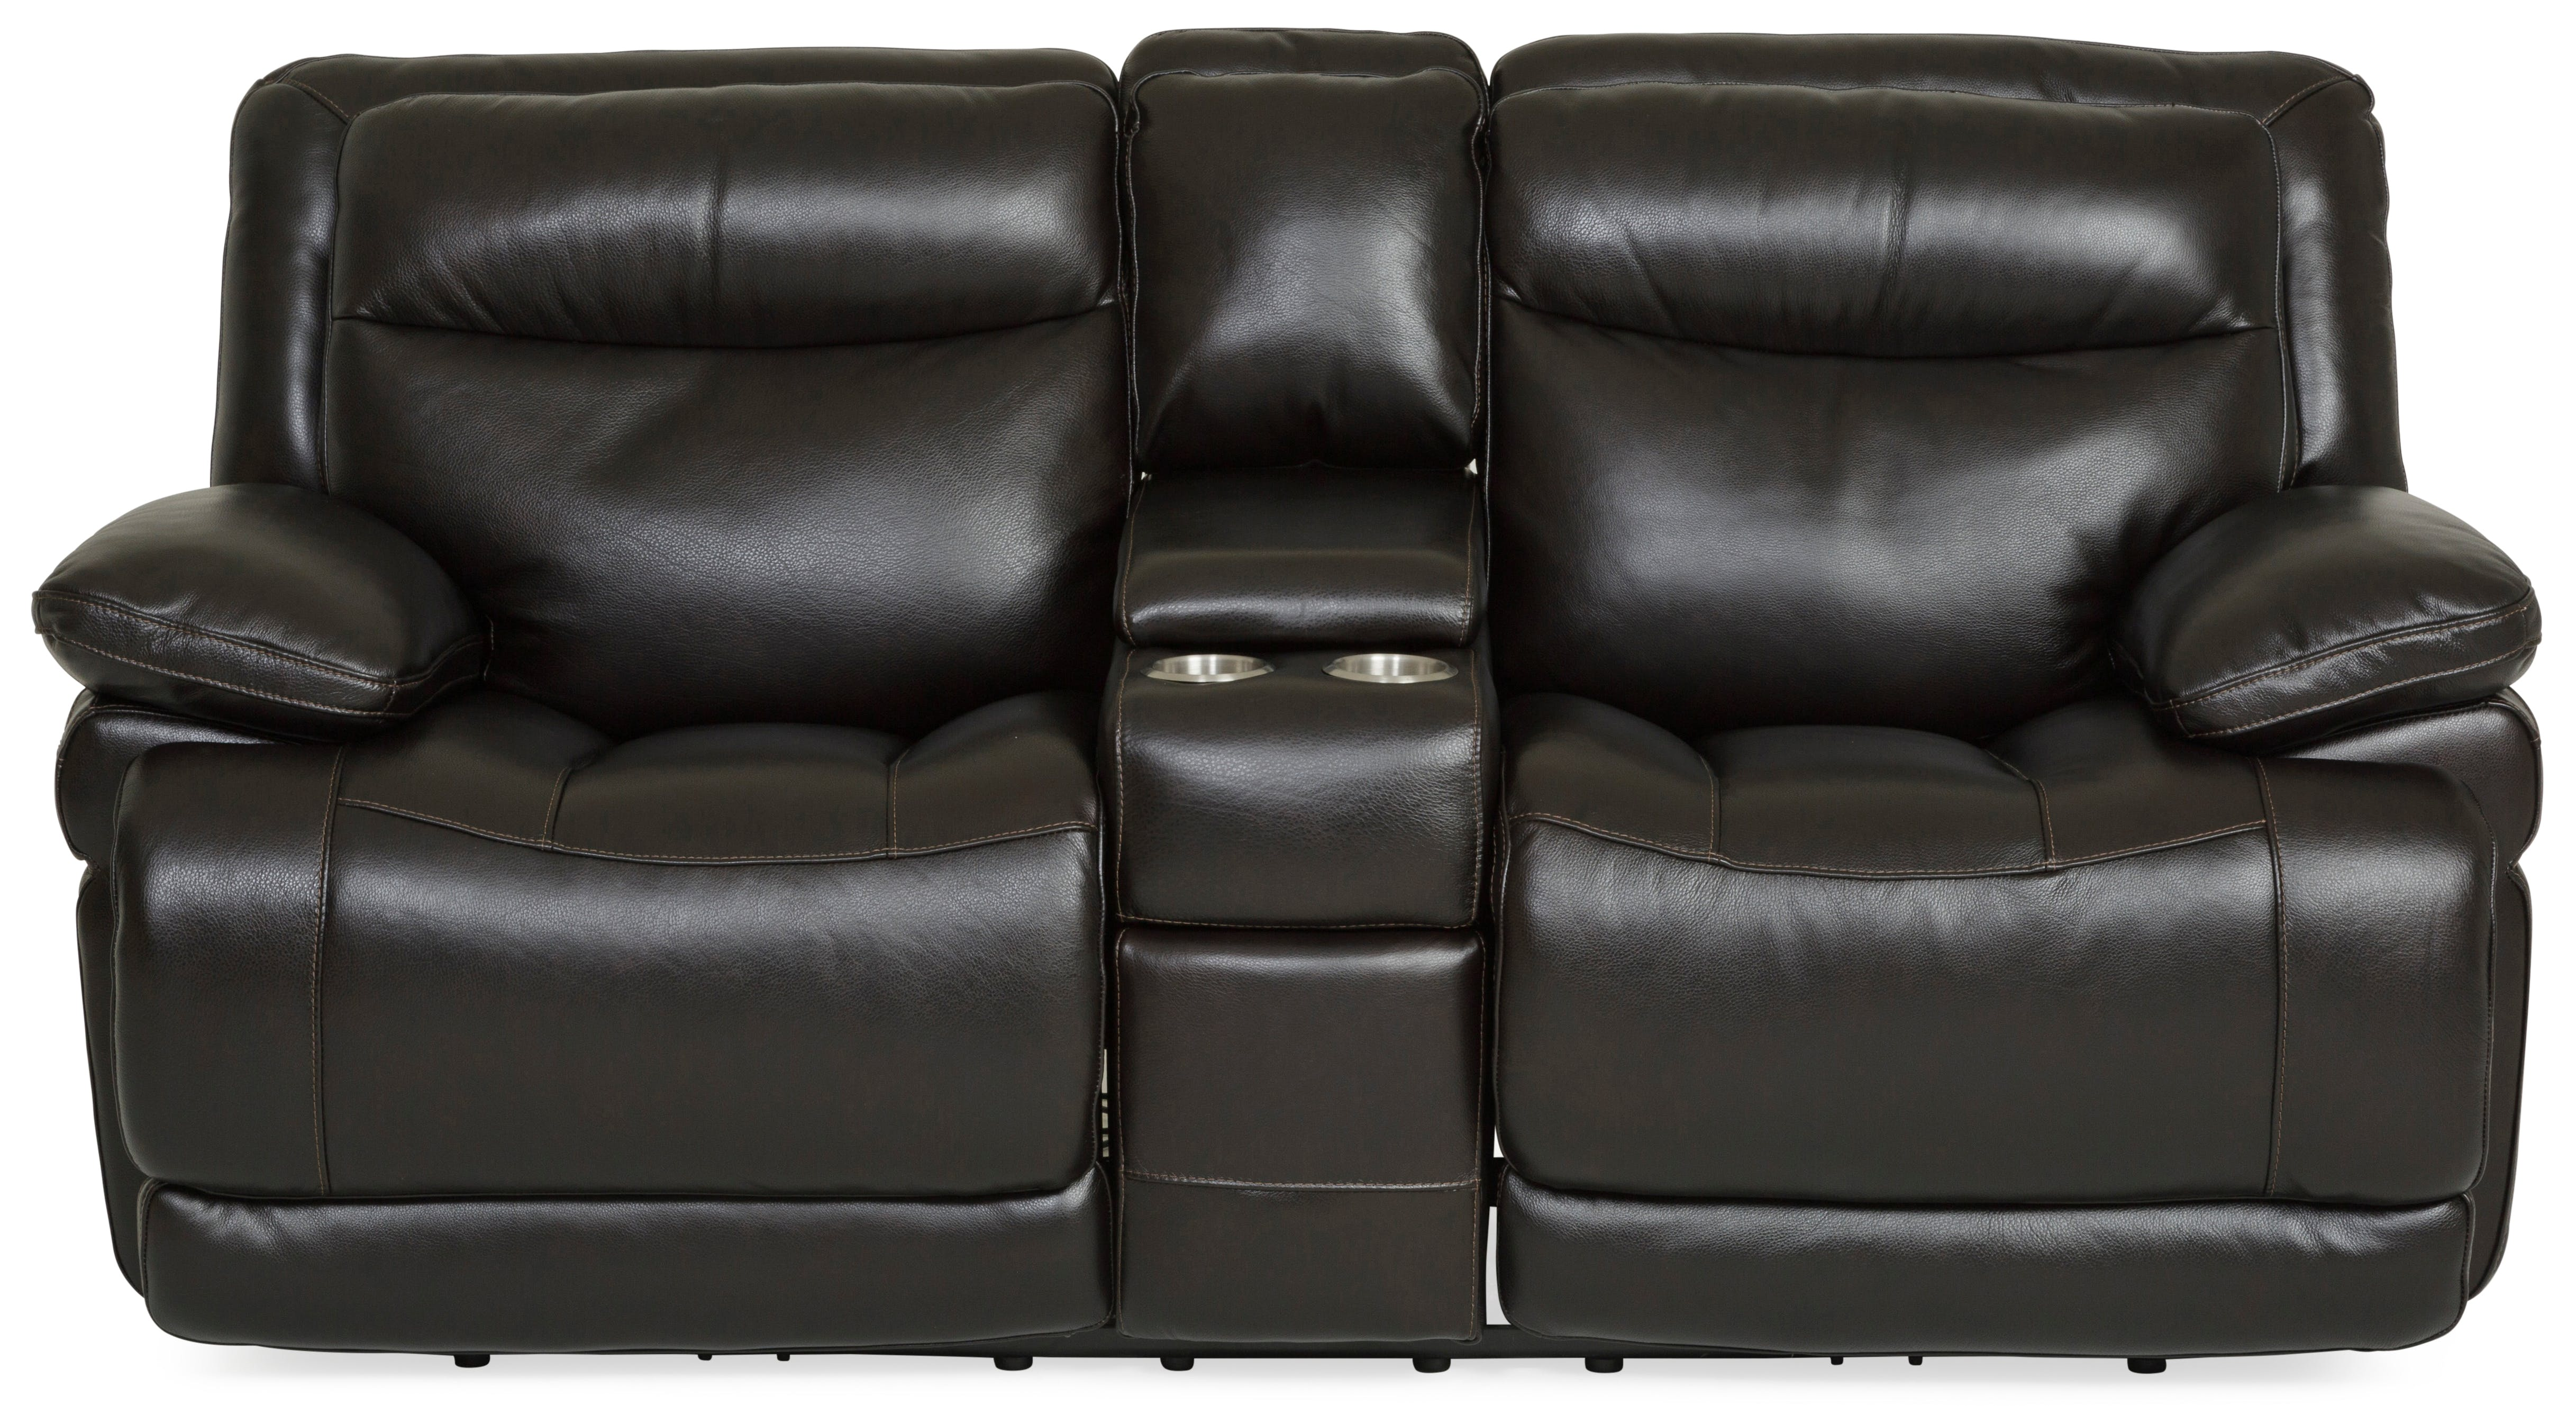 Living Room Longhorn Leather Power Reclining Loveseat - BLACKBERRY